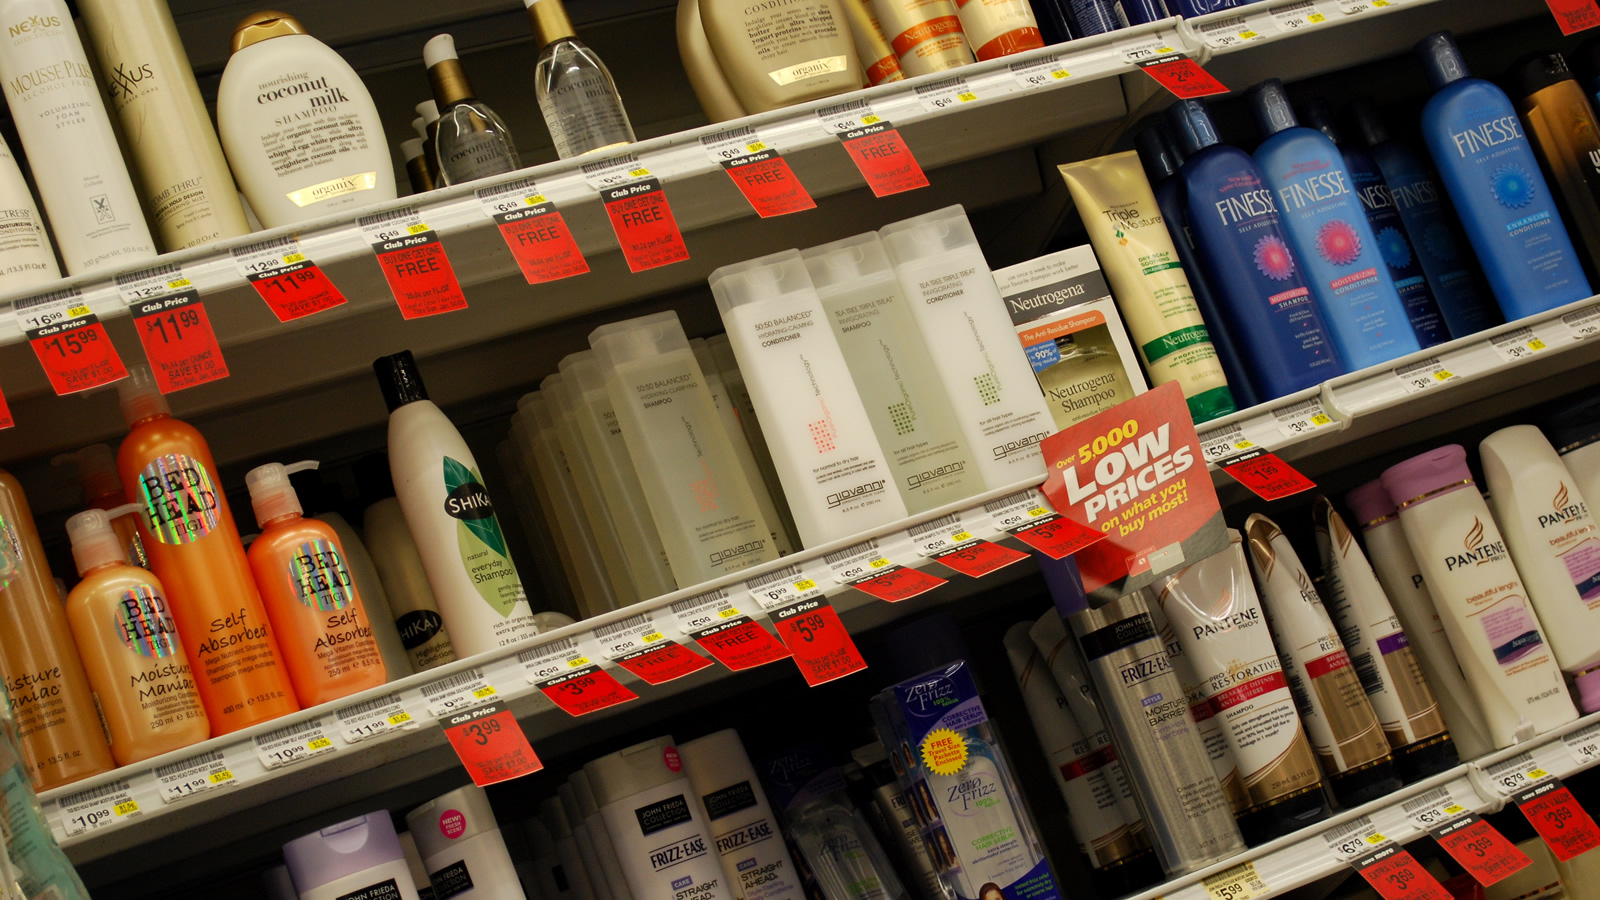 <h4>Make It Toxic-Free</h4><p>Most people are surprised to learn that companies like Procter & Gamble, L'Oréal and Unilever are allowed to use nearly any chemical they want as an ingredient in their personal care products, and many of these chemicals have been linked to serious health impacts, including cancer. That's why we're calling on the big three personal care companies, L'Oréal, P&G and Unilever, to Make It Toxic-Free.</p><em>Hannah Rosen via Flickr, CC-BY-2.0</em>